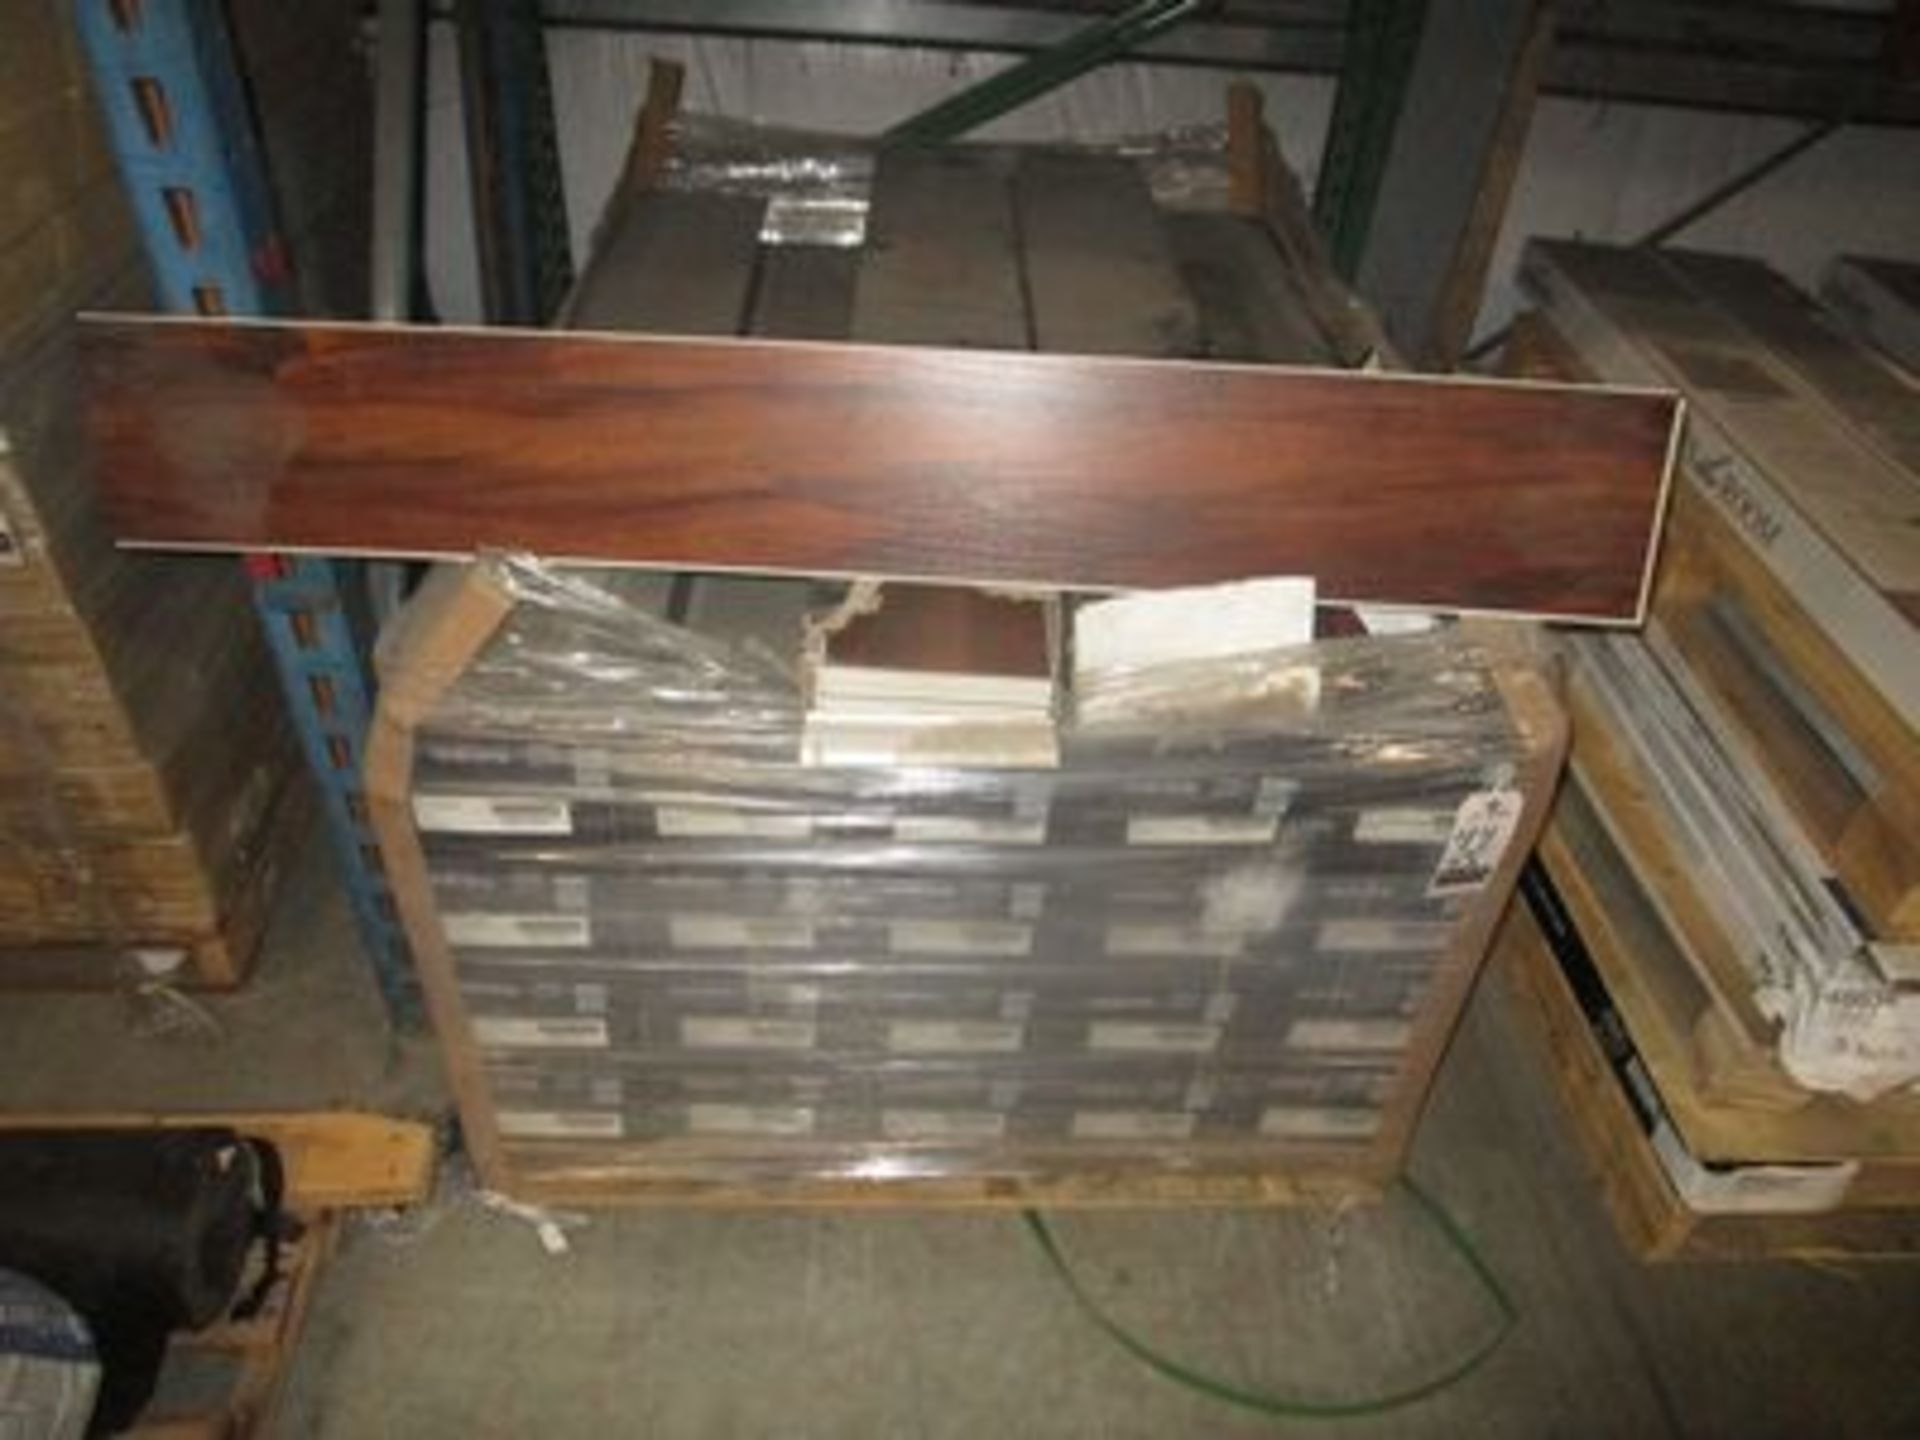 Lot 44 - BOXES MOHAWK SOLID TECH BURNT EMBERS T & G HARDWOOD FLOORING, (23 S/F PER BOX)